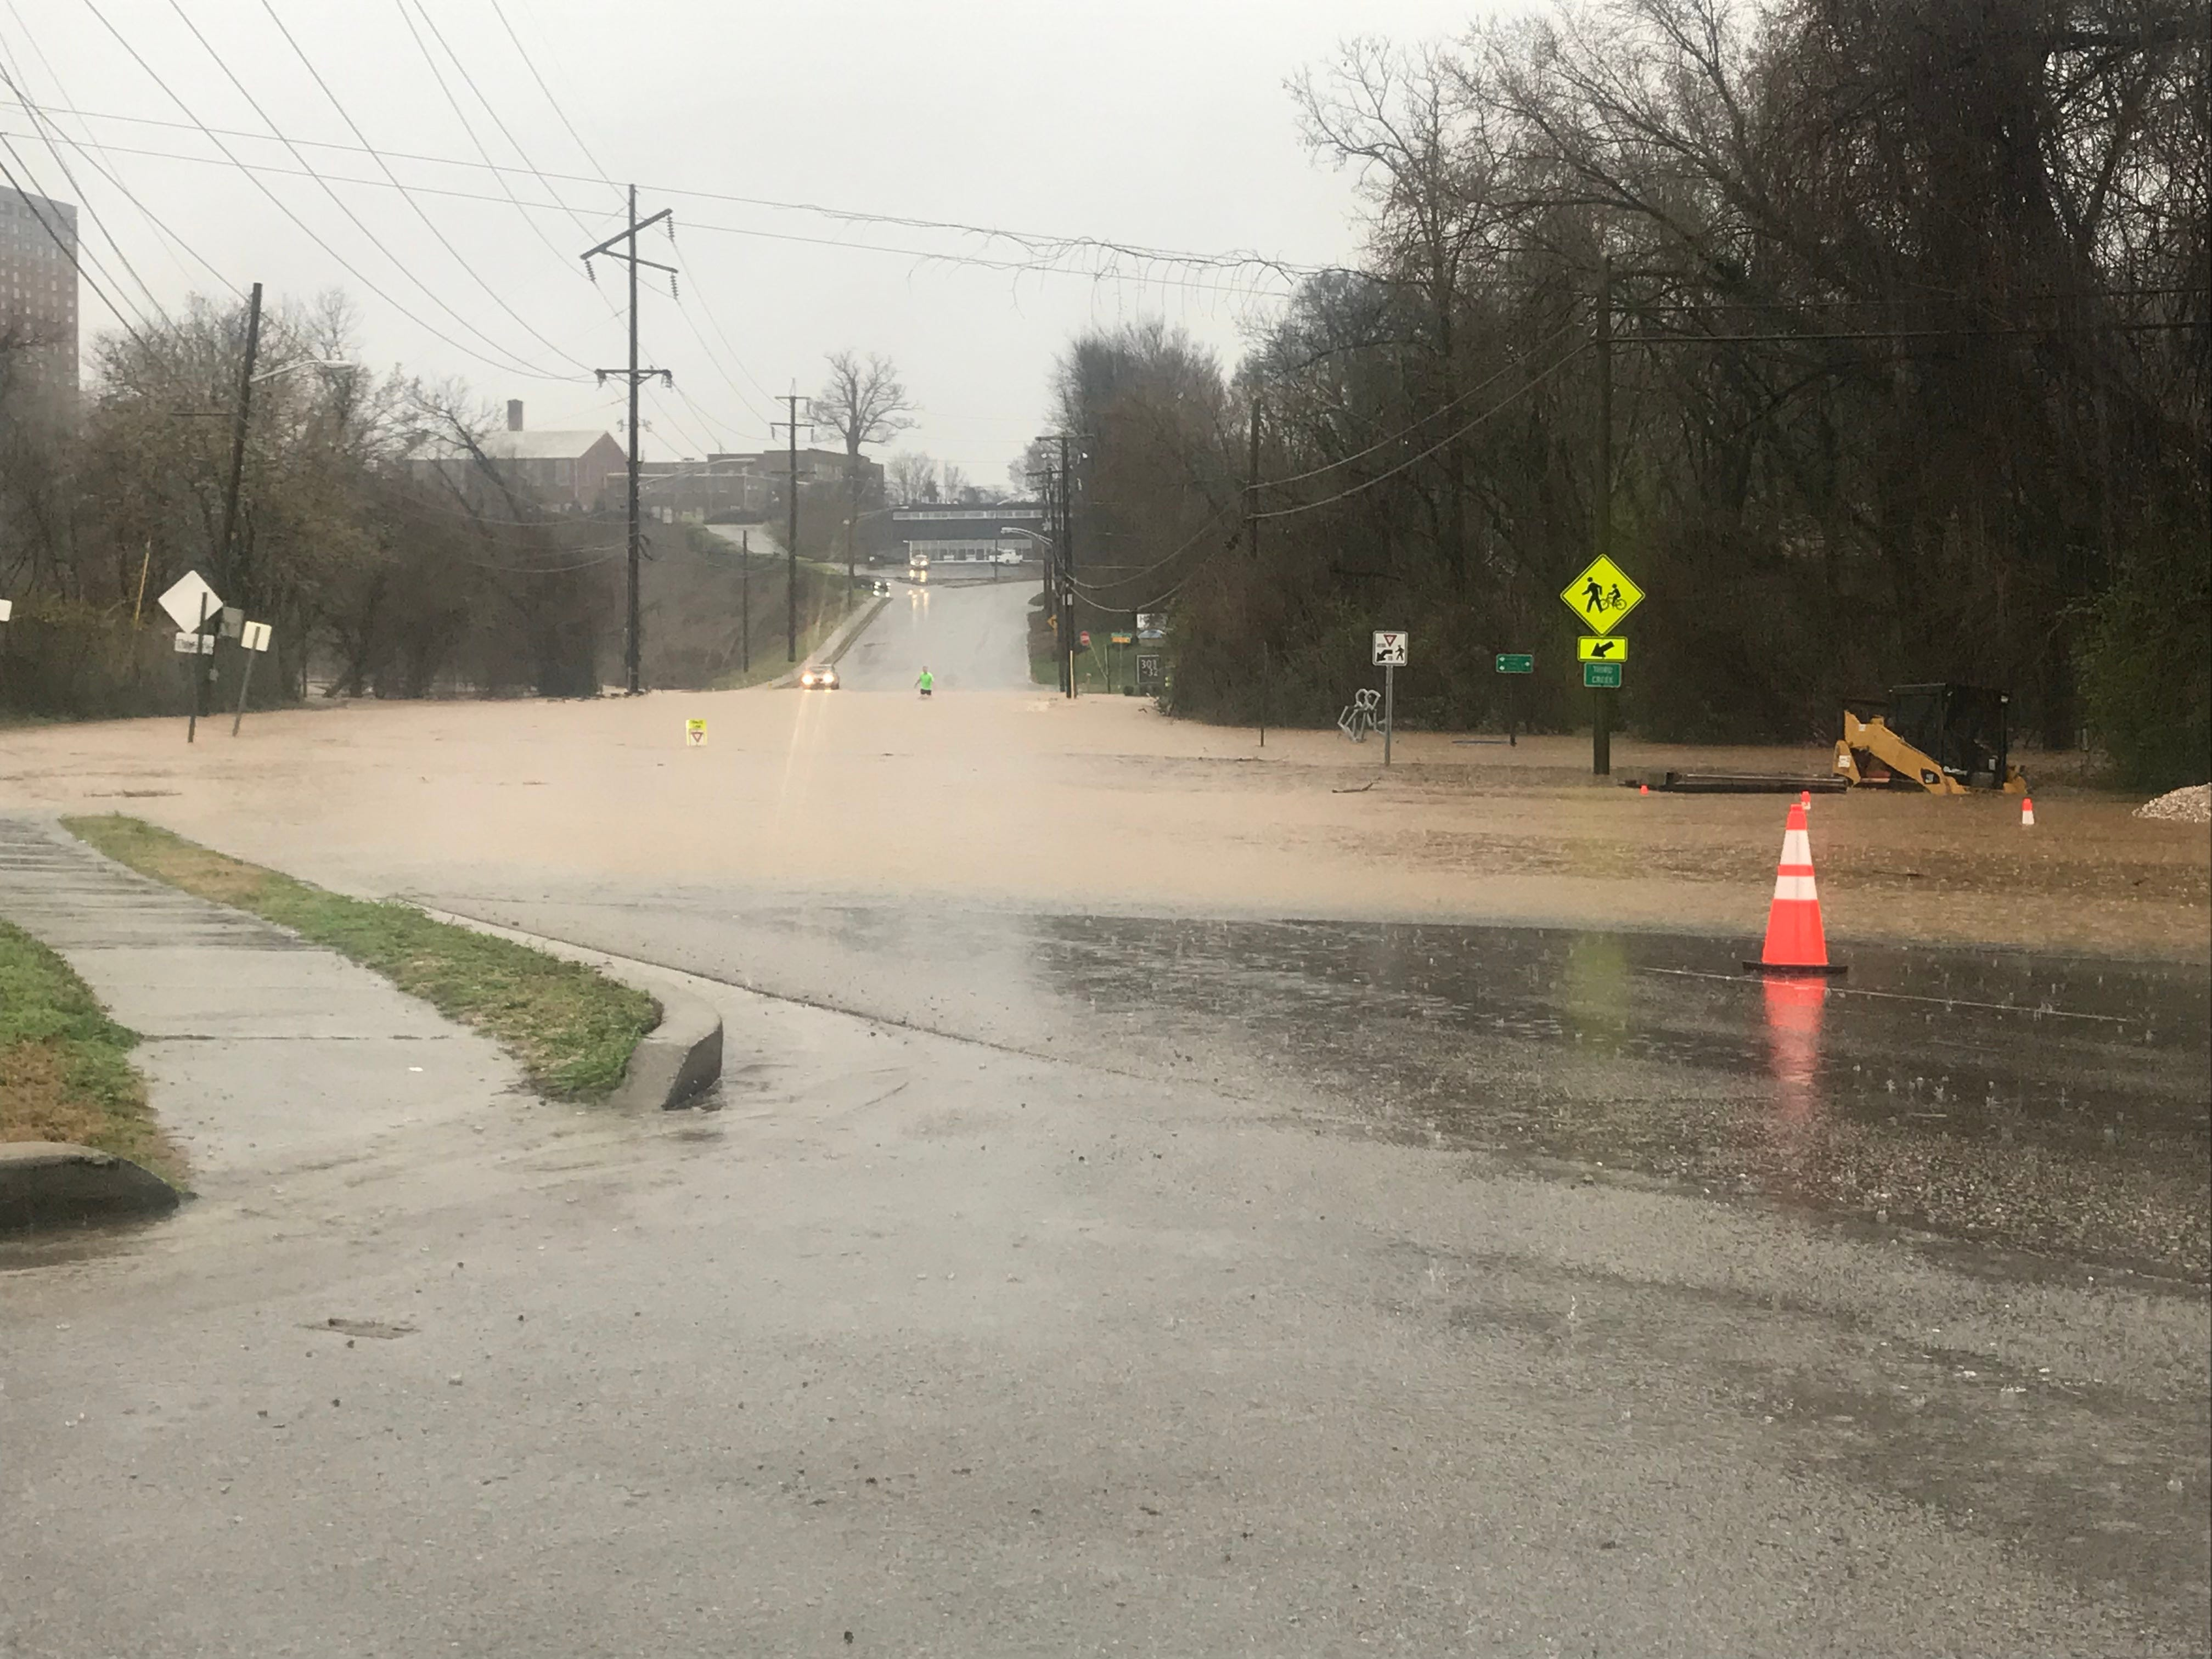 A pedestrian wades through the flooding water at Concord and Sutherland near University of Tennessee.